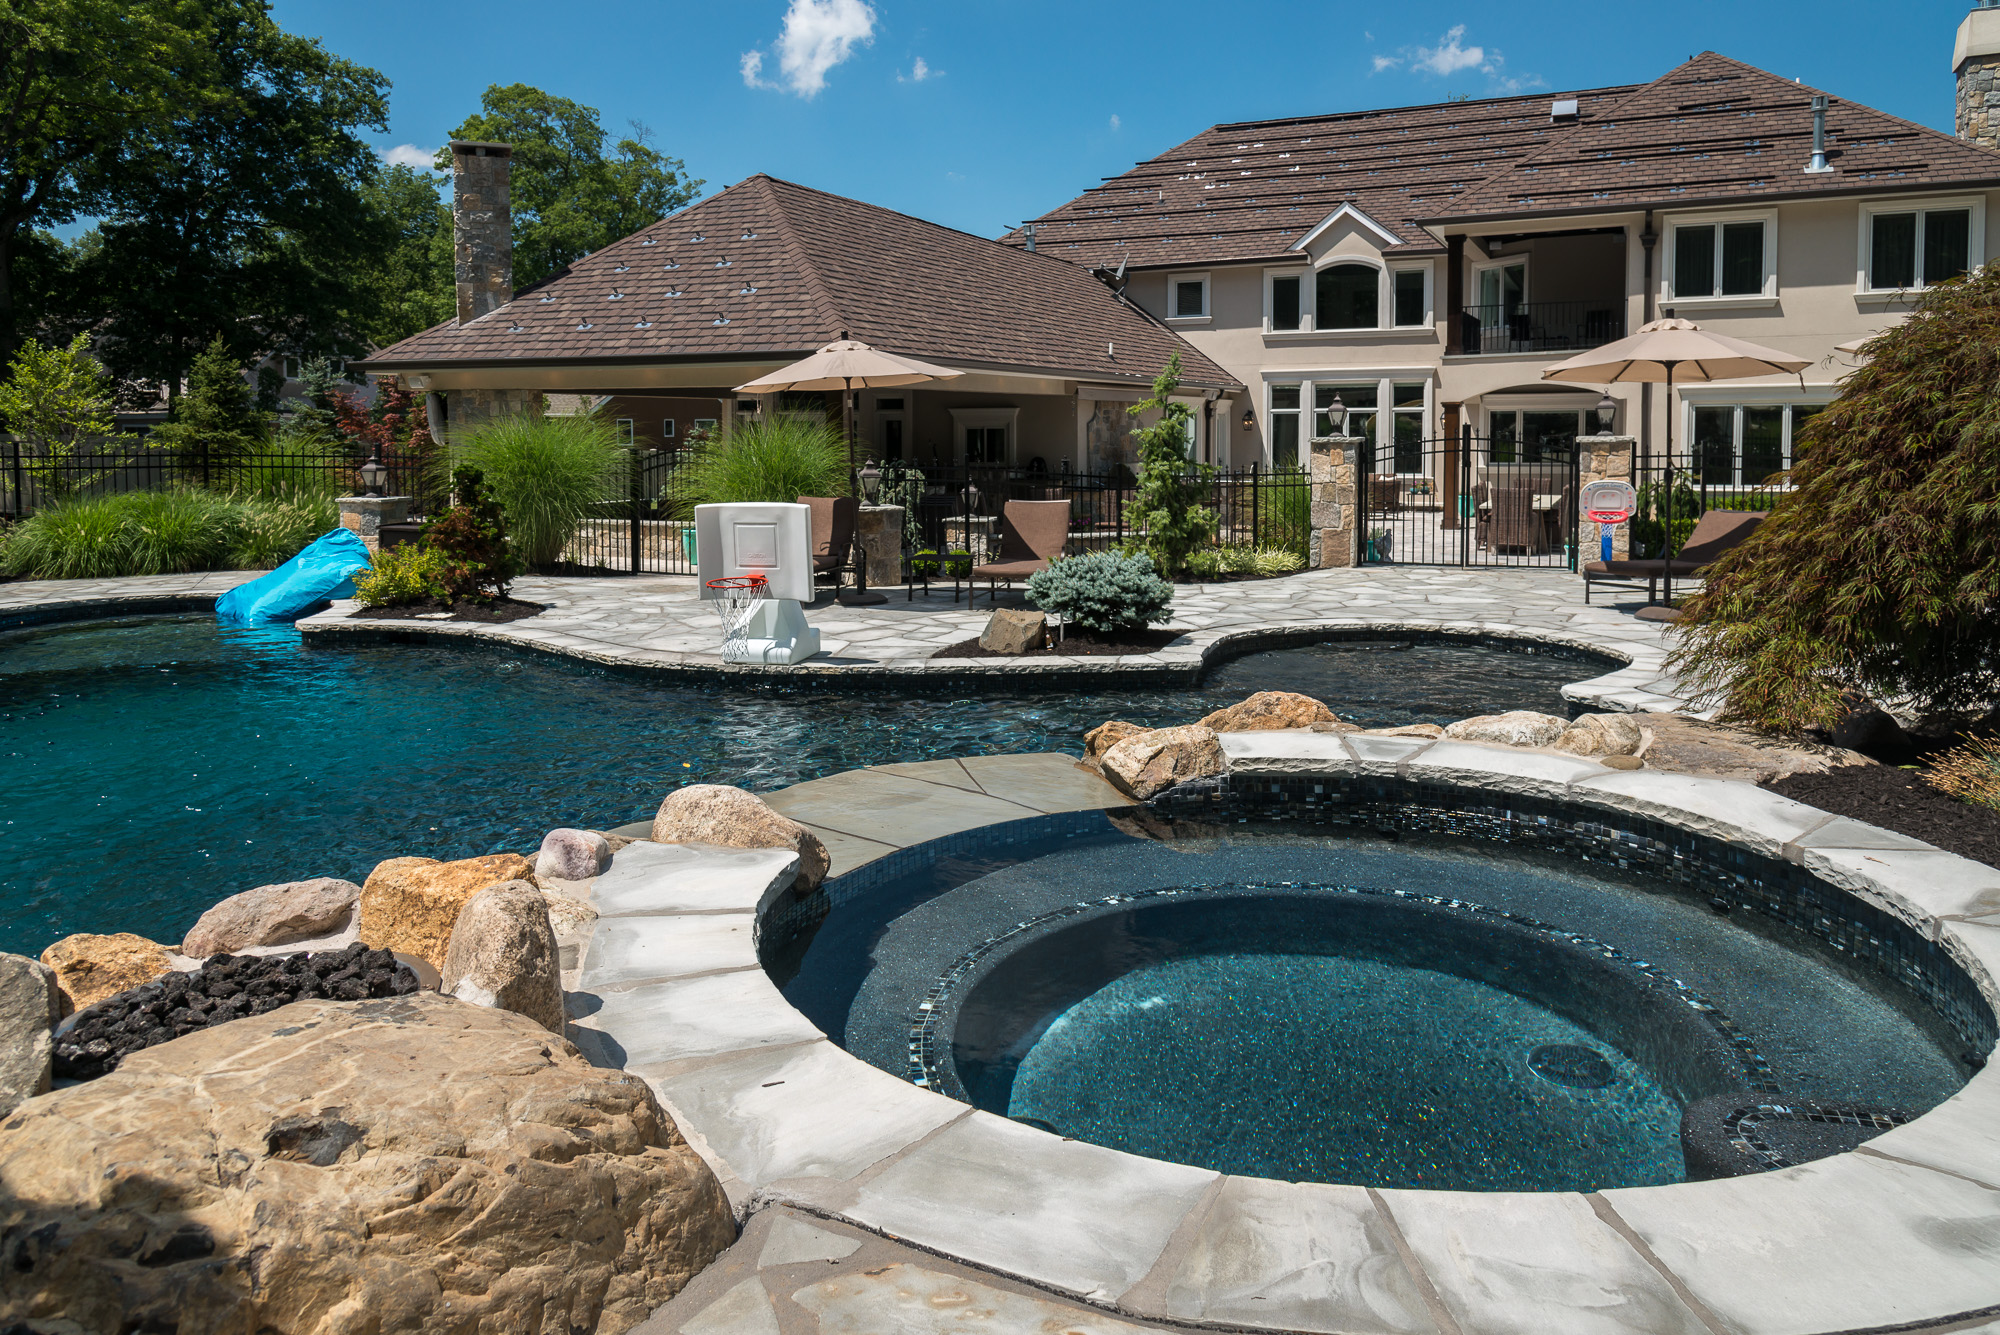 Livingston nj custom inground swimming pool design for Custom swimming pools